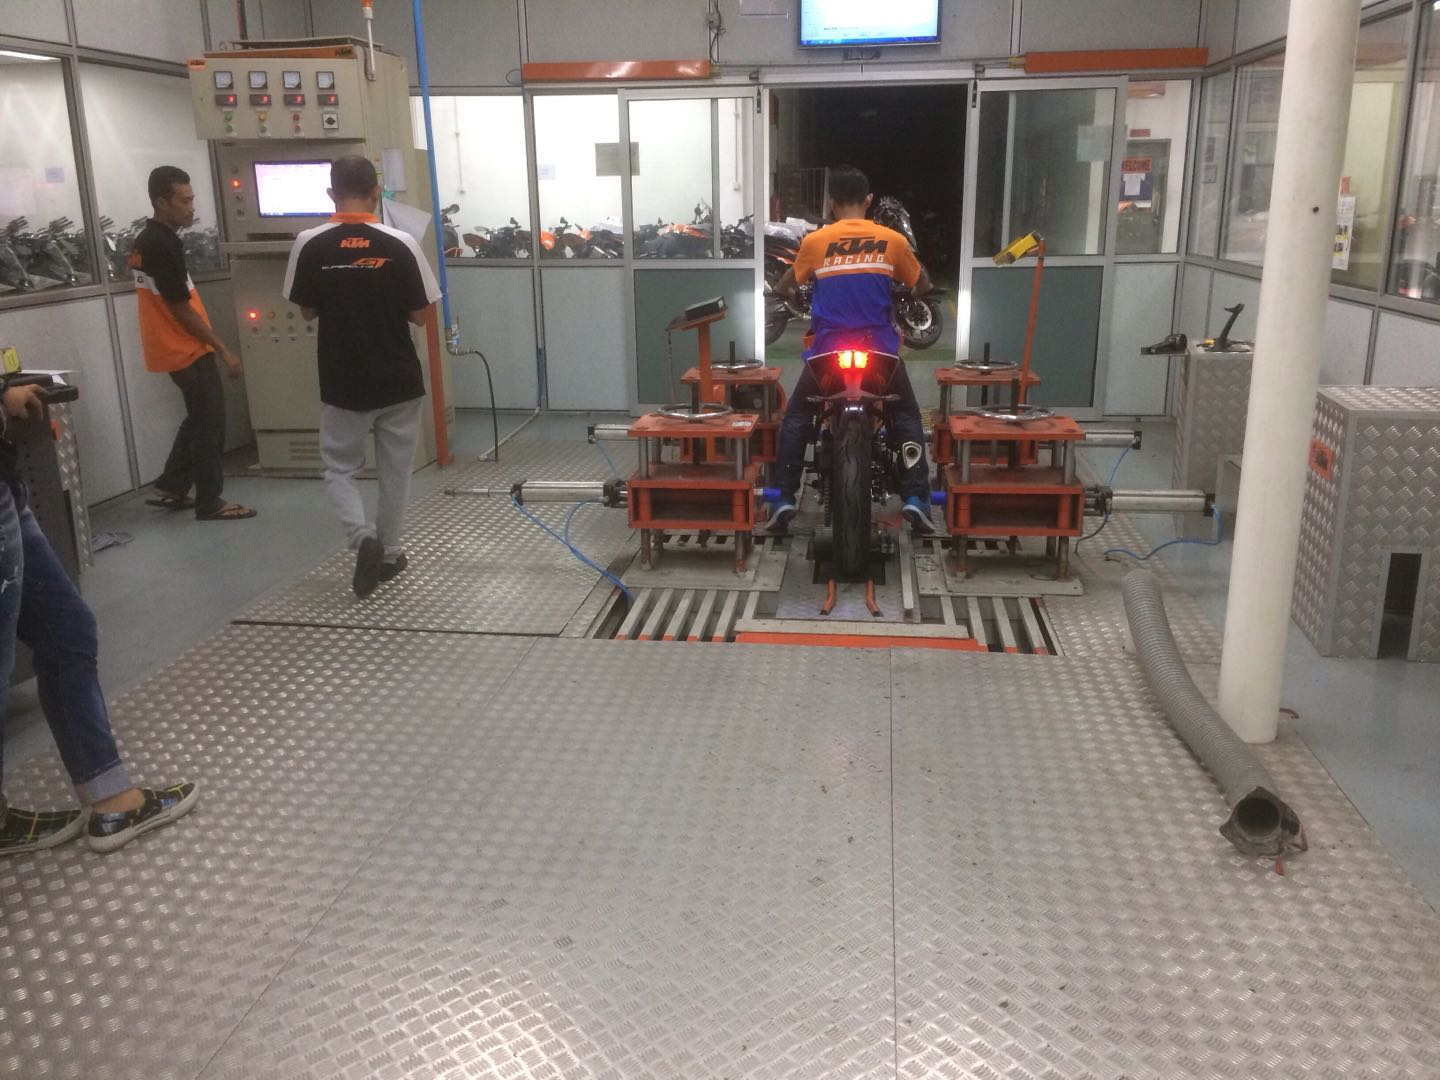 MotorcycleABS test bench